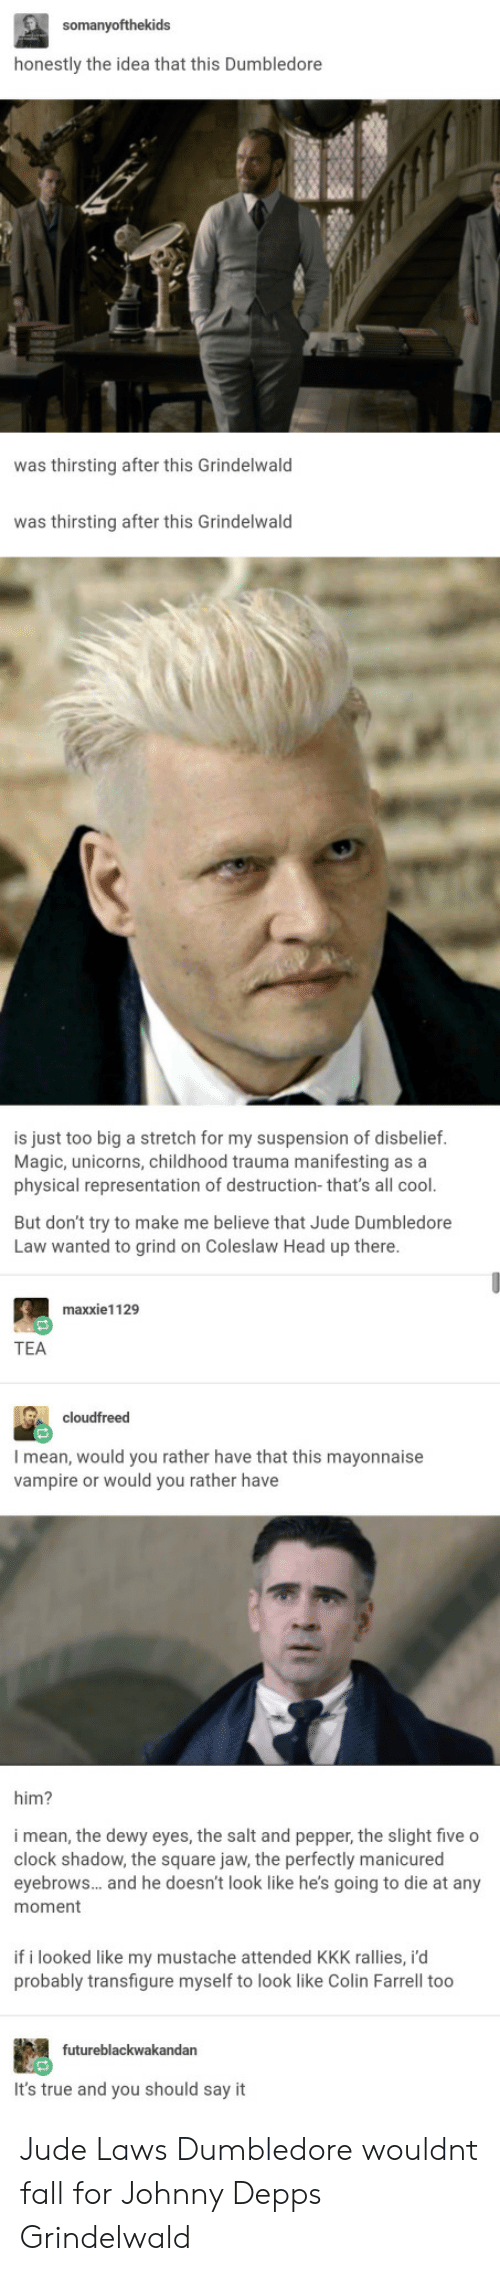 depp: honestly the idea that this Dumbledore  was thirsting after this Grindelwald  was thirsting after this Grindelwald  is just too big a stretch for my suspension of disbelief.  Magic, unicorns, childhood trauma manifesting as a  physical representation of destruction-that's all cool.  But don't try to make me believe that Jude Dumbledore  Law wanted to grind on Coleslaw Head up there  maxxie1129  TEA  cloudfreed  I mean, would you rather have that this mayonnaise  vampire or would you rather have  him?  i mean, the dewy eyes, the salt and pepper, the slight five o  clock shadow, the square jaw, the perfectly manicured  eyebrows... and he doesn't look like he's going to die at any  moment  if i looked like my mustache attended KKK rallies, i'd  probably transfigure myself to look like Colin Farrell too  futureblackwakandan  It's true and you should say it Jude Laws Dumbledore wouldnt fall for Johnny Depps Grindelwald